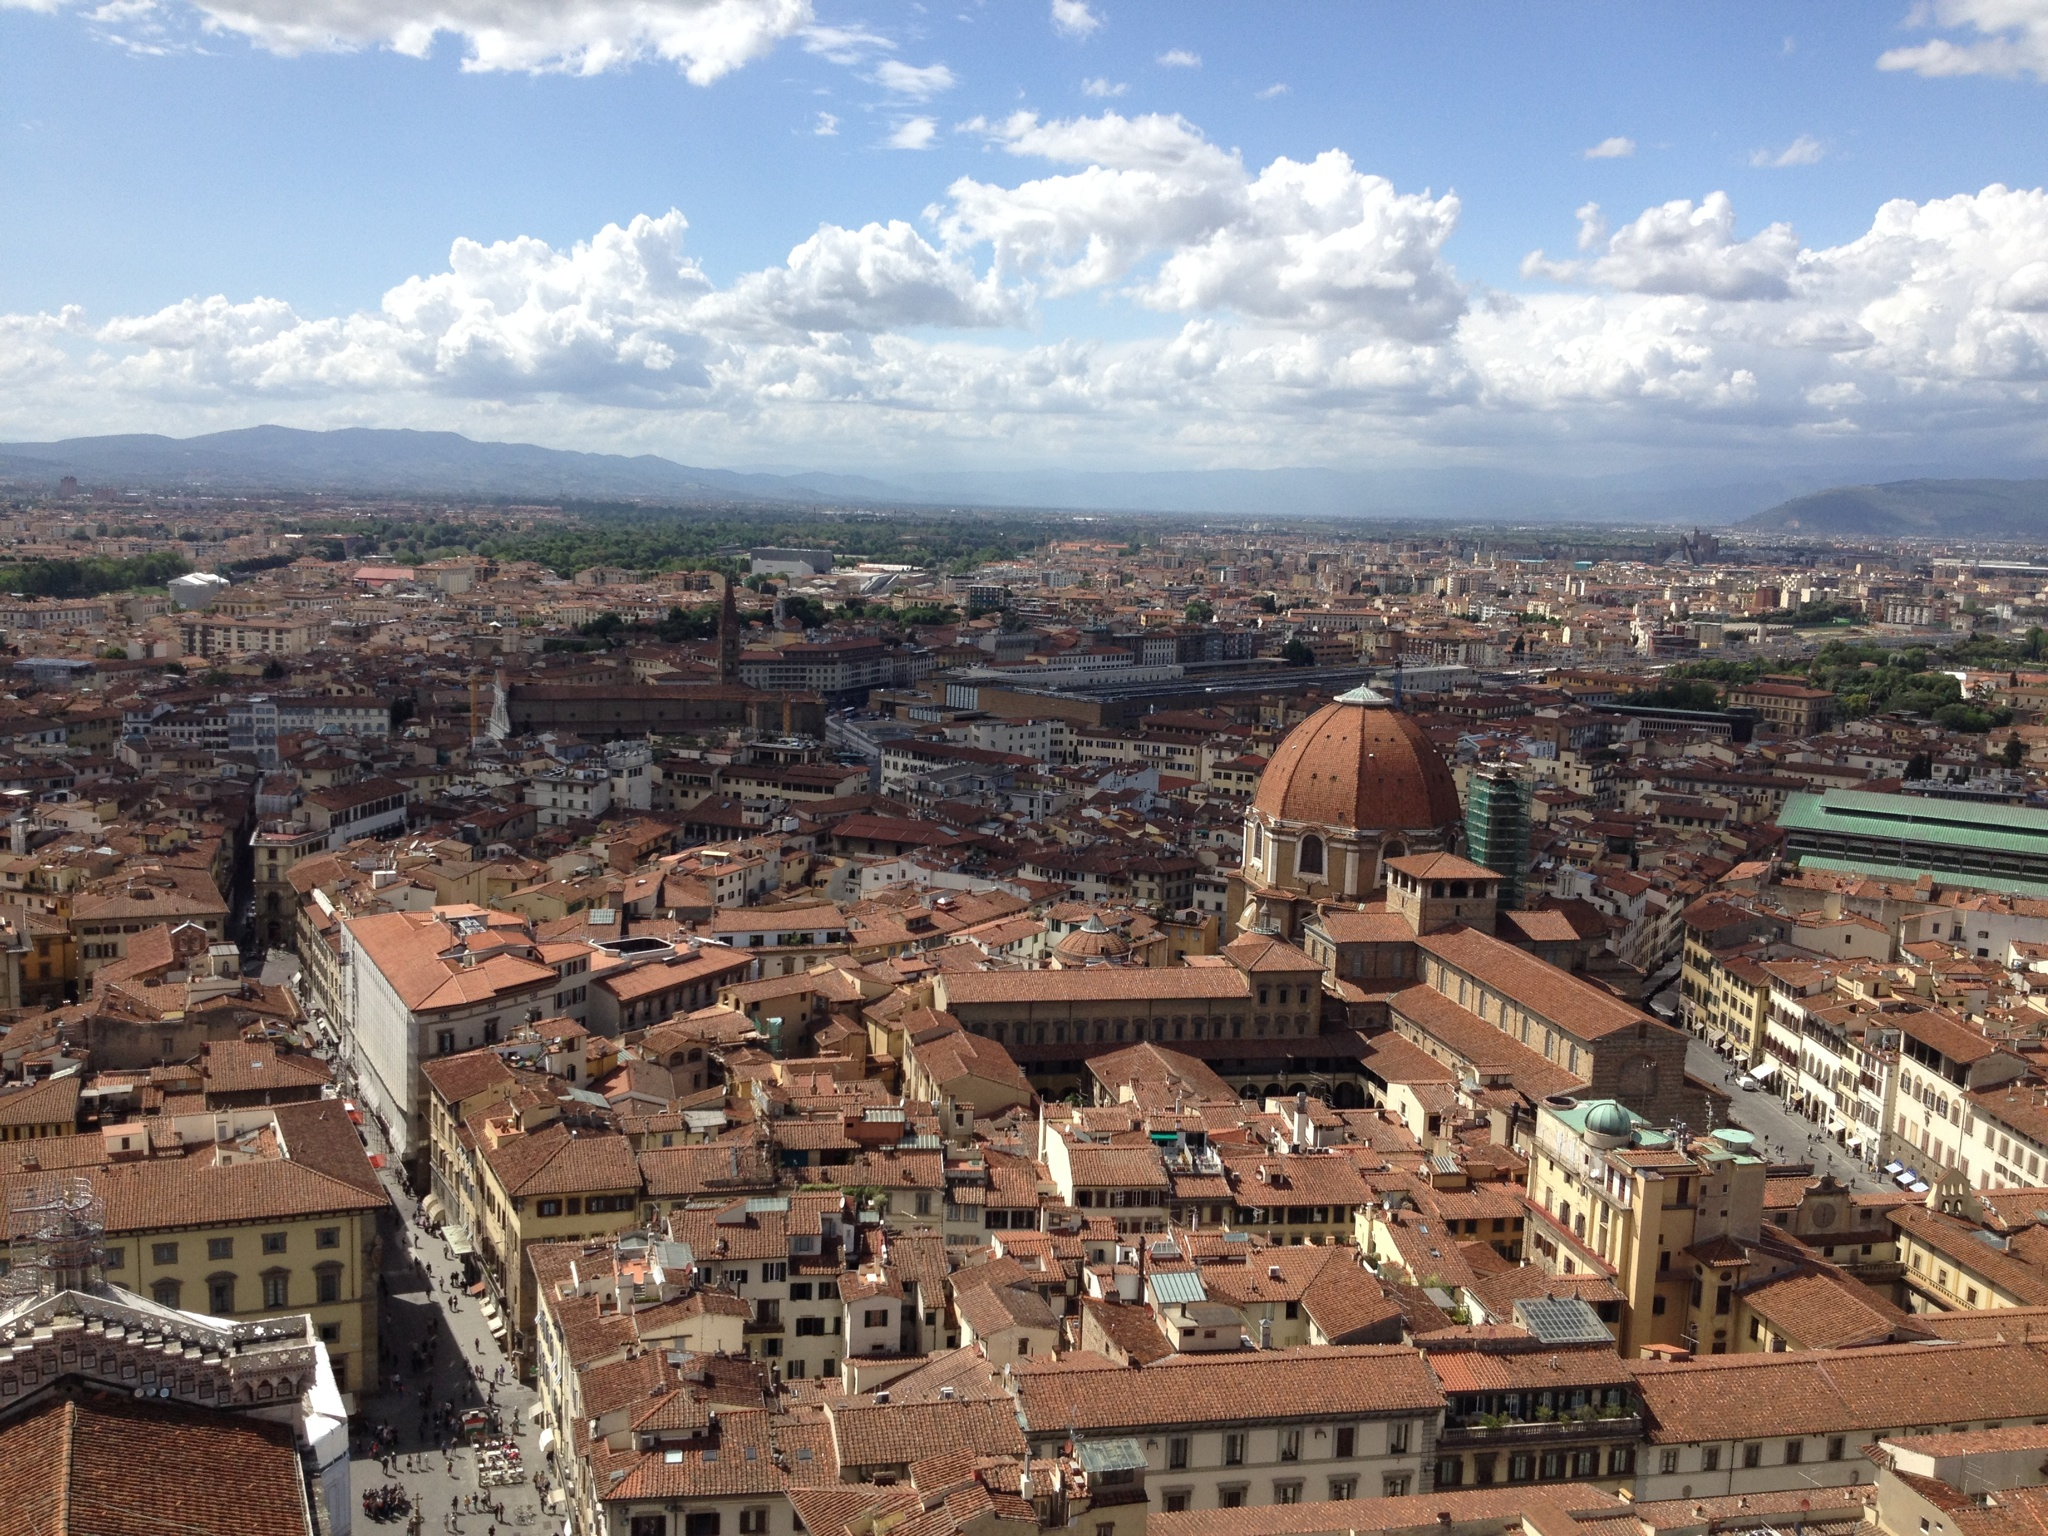 Florence (Firenze), Italy viewed from the Duomo